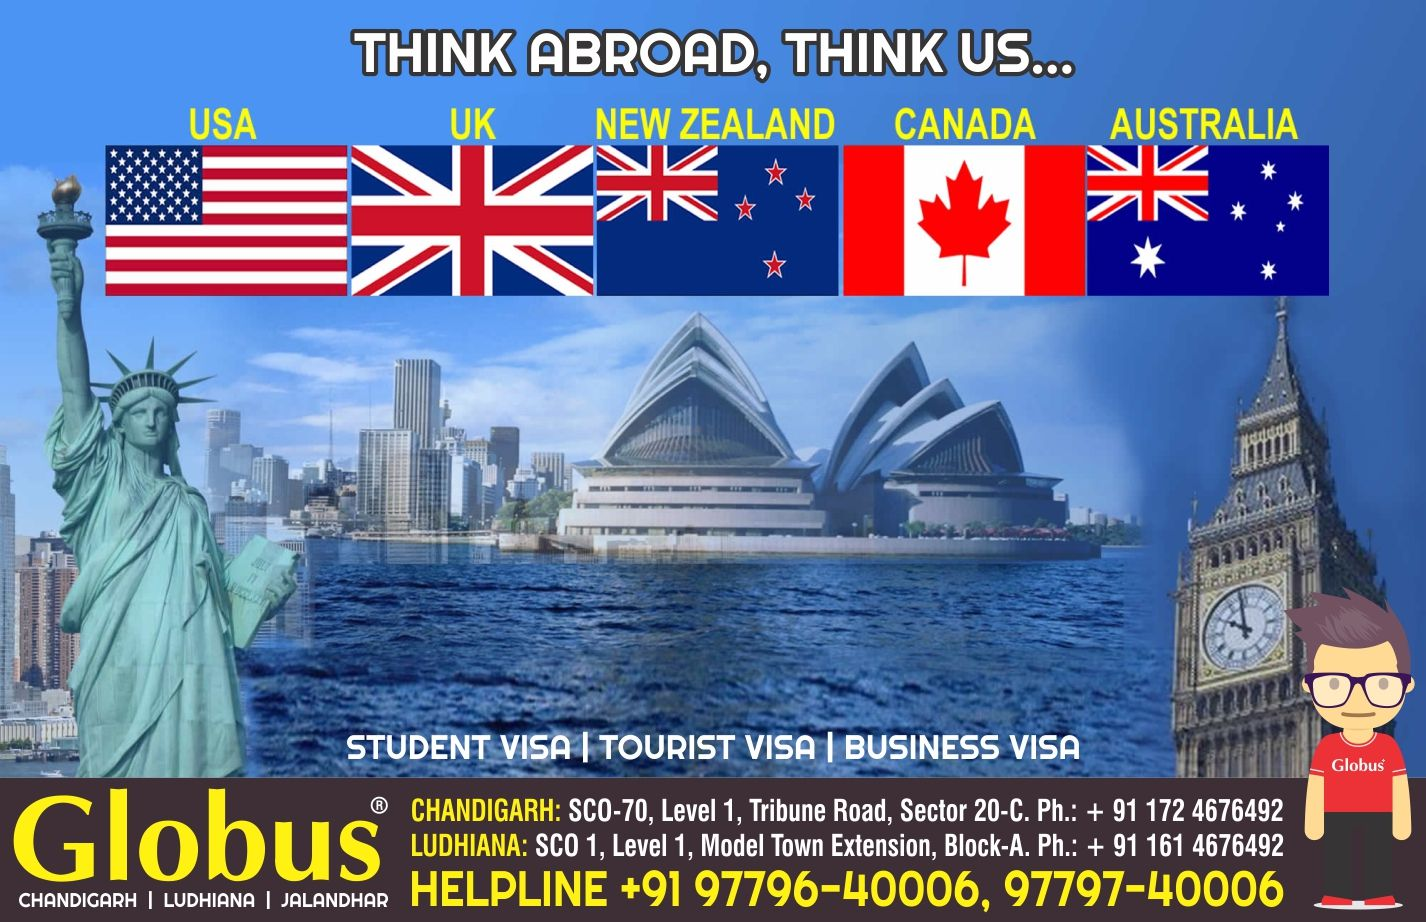 EducationUSA Australia - Home | Facebook